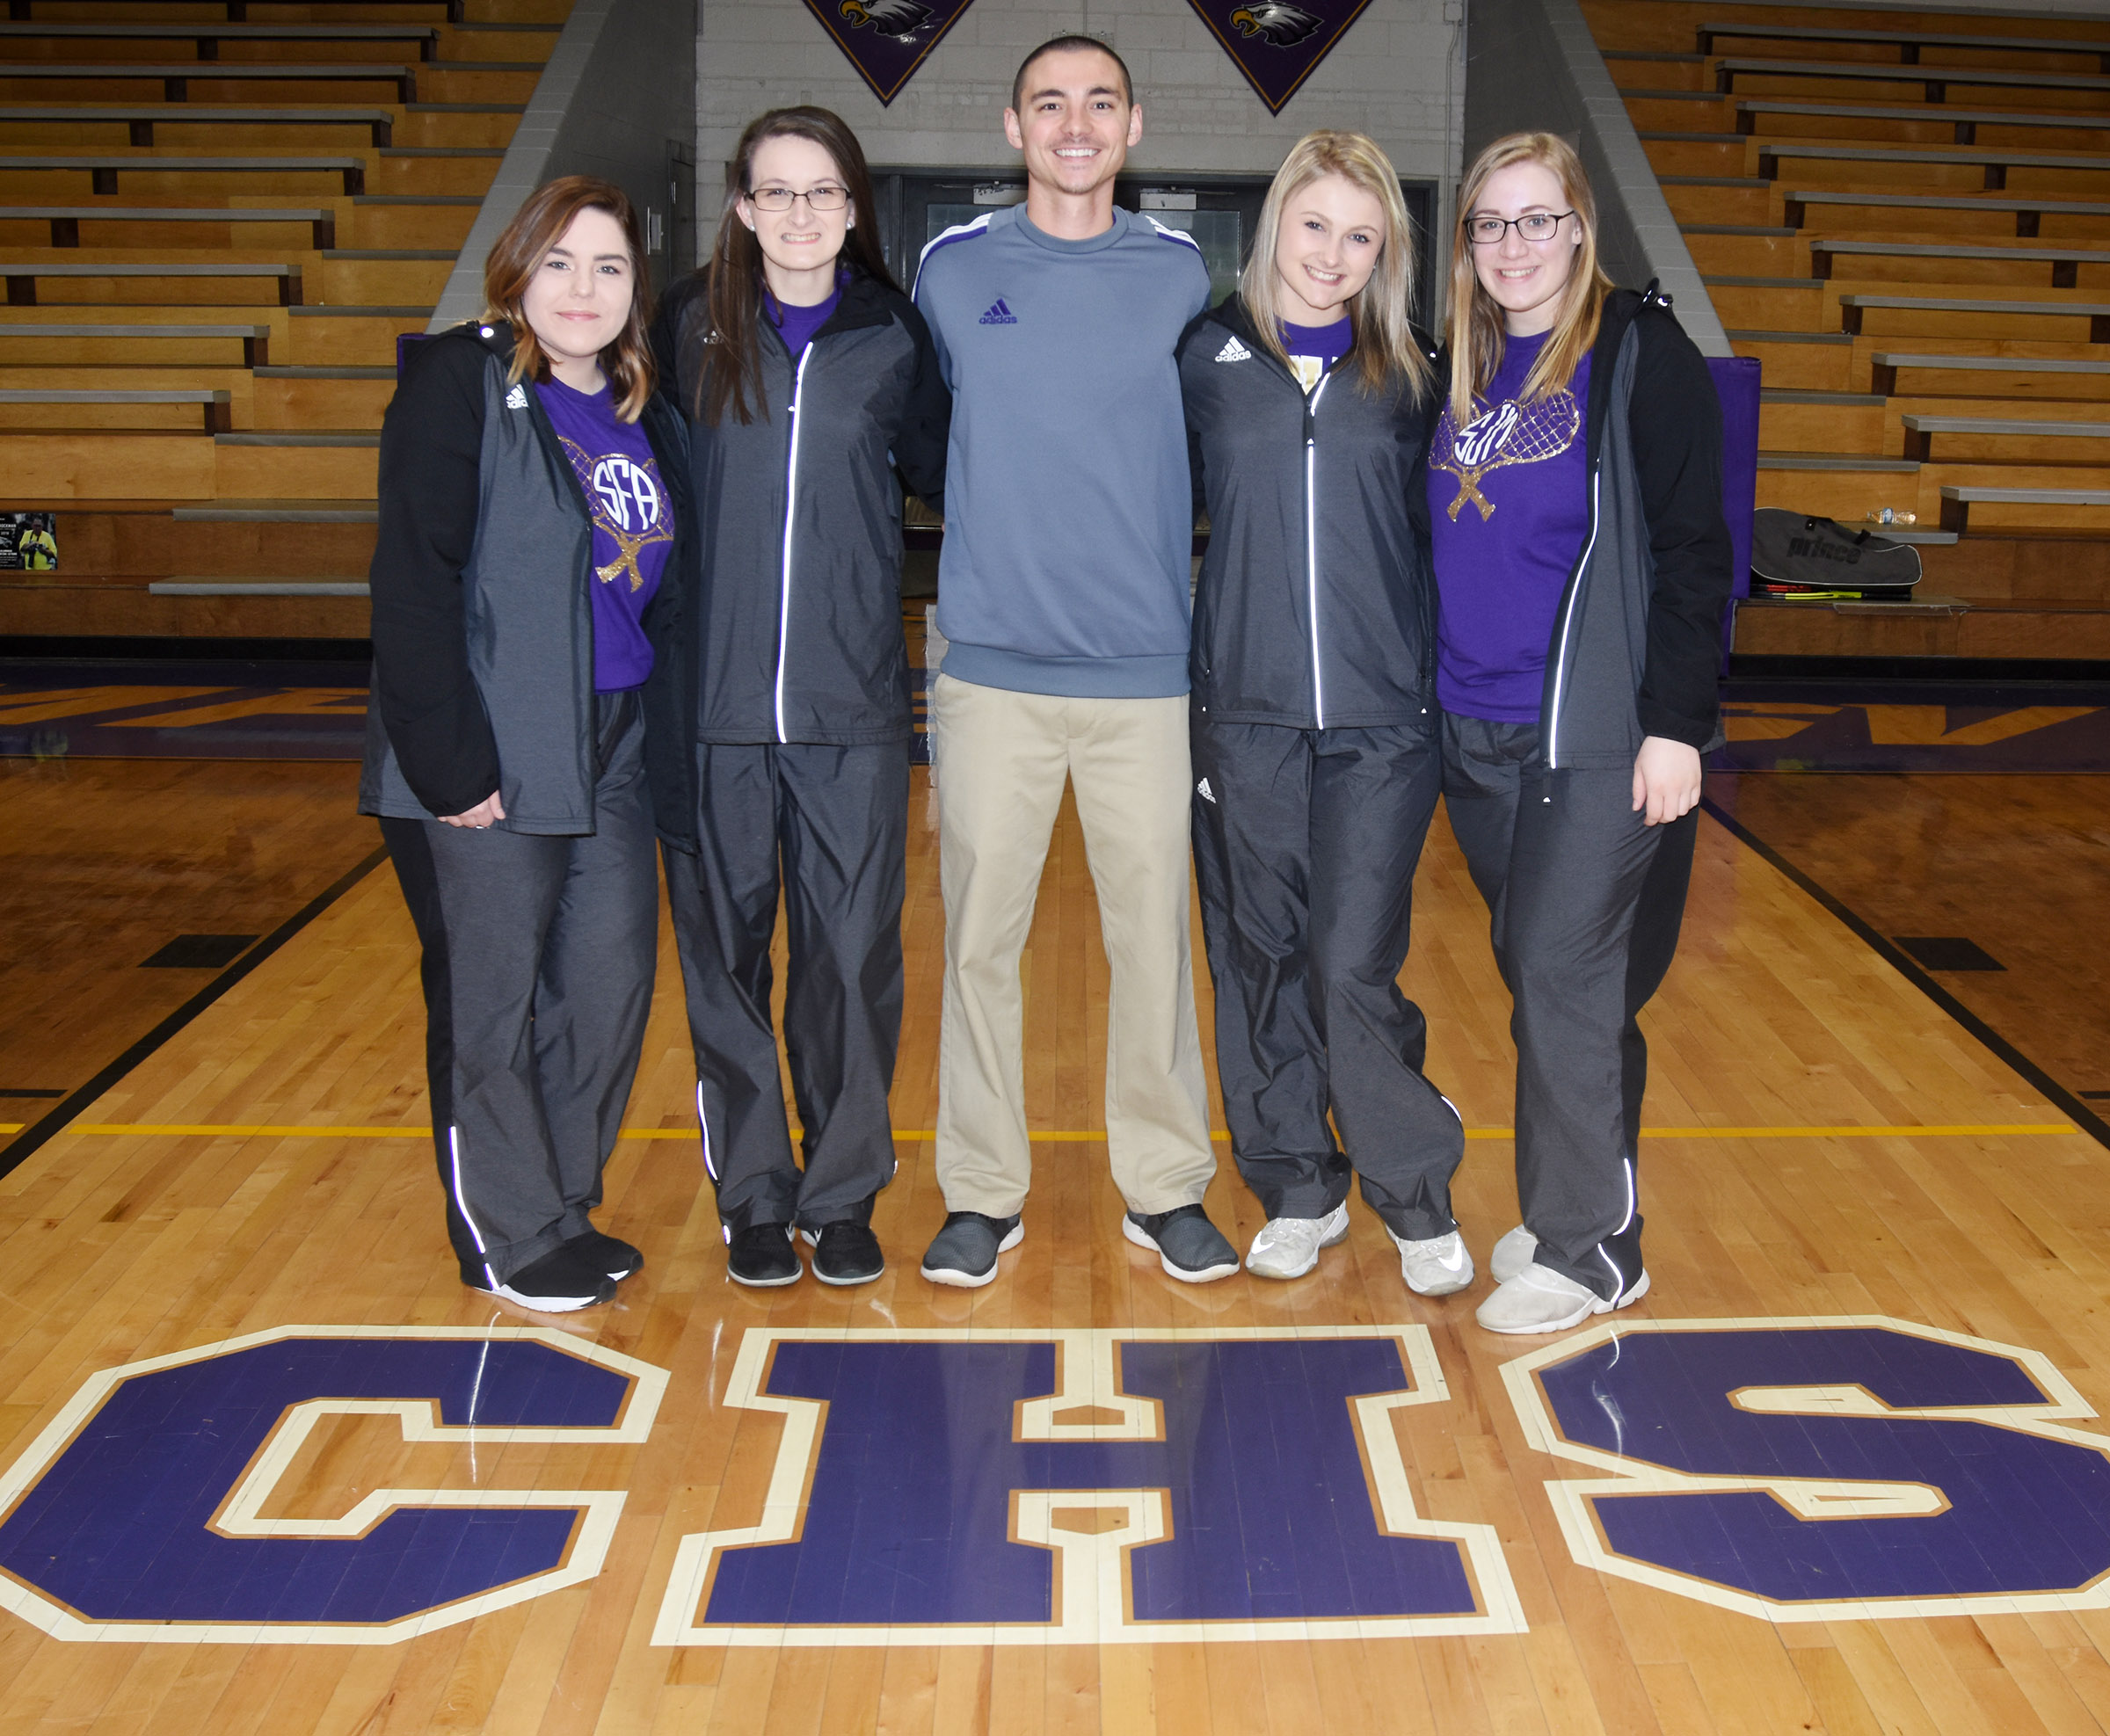 CHS girls' tennis team includes, from left, seniors Sara Farmer and Kimberly Harden, coach Bradley Harris and sophomores Victoria Cox and Samantha Johnson.